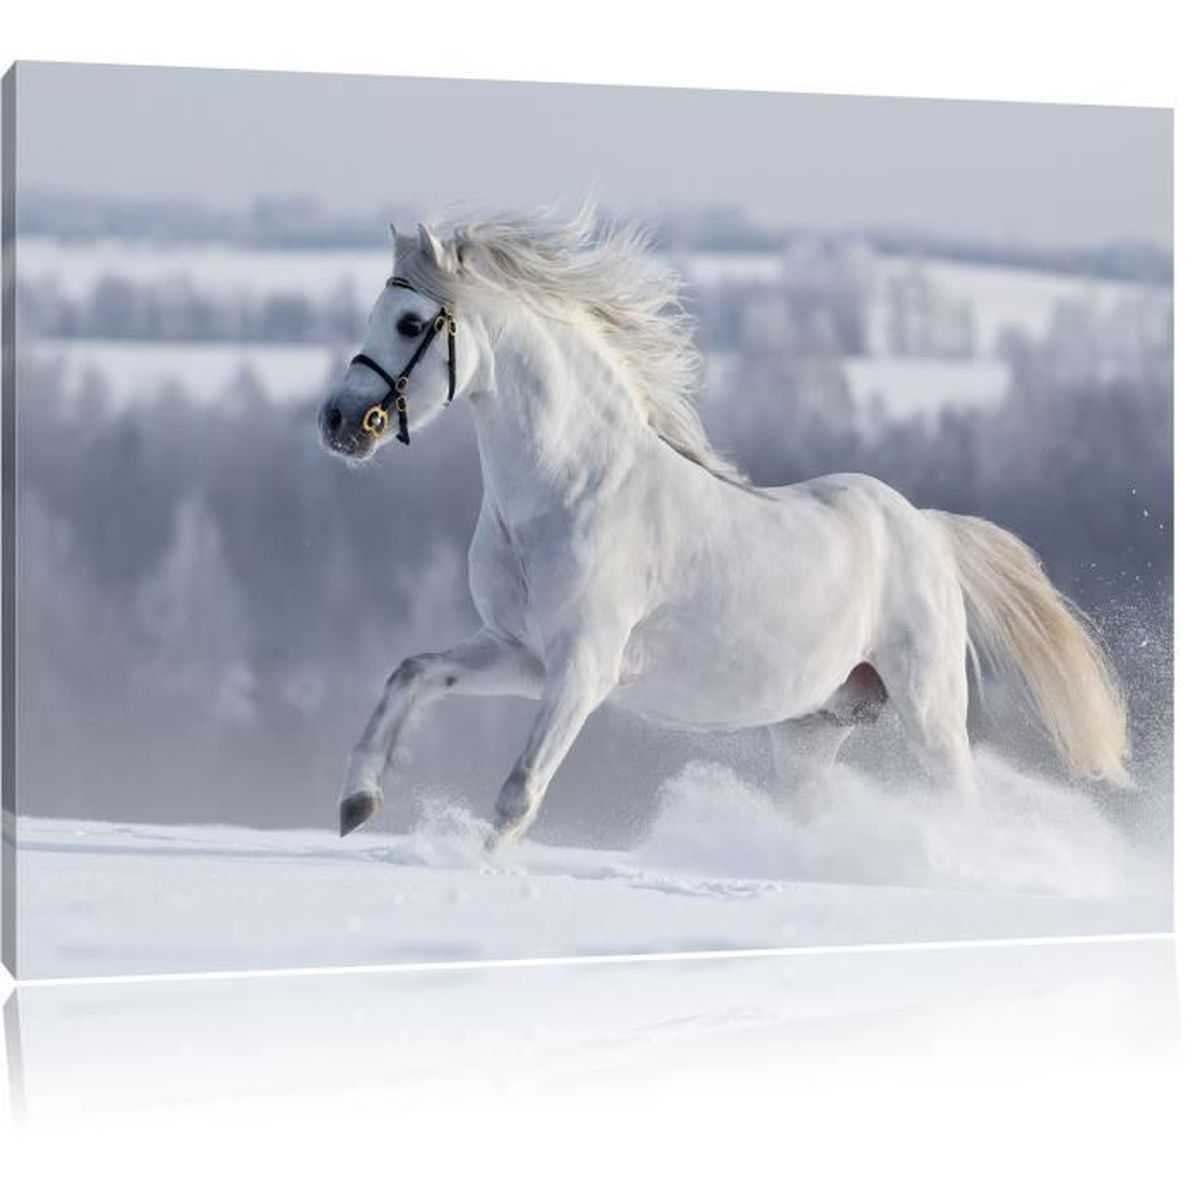 Poster Mural Geant Cheval. Awesome Download By Tablet Desktop ...